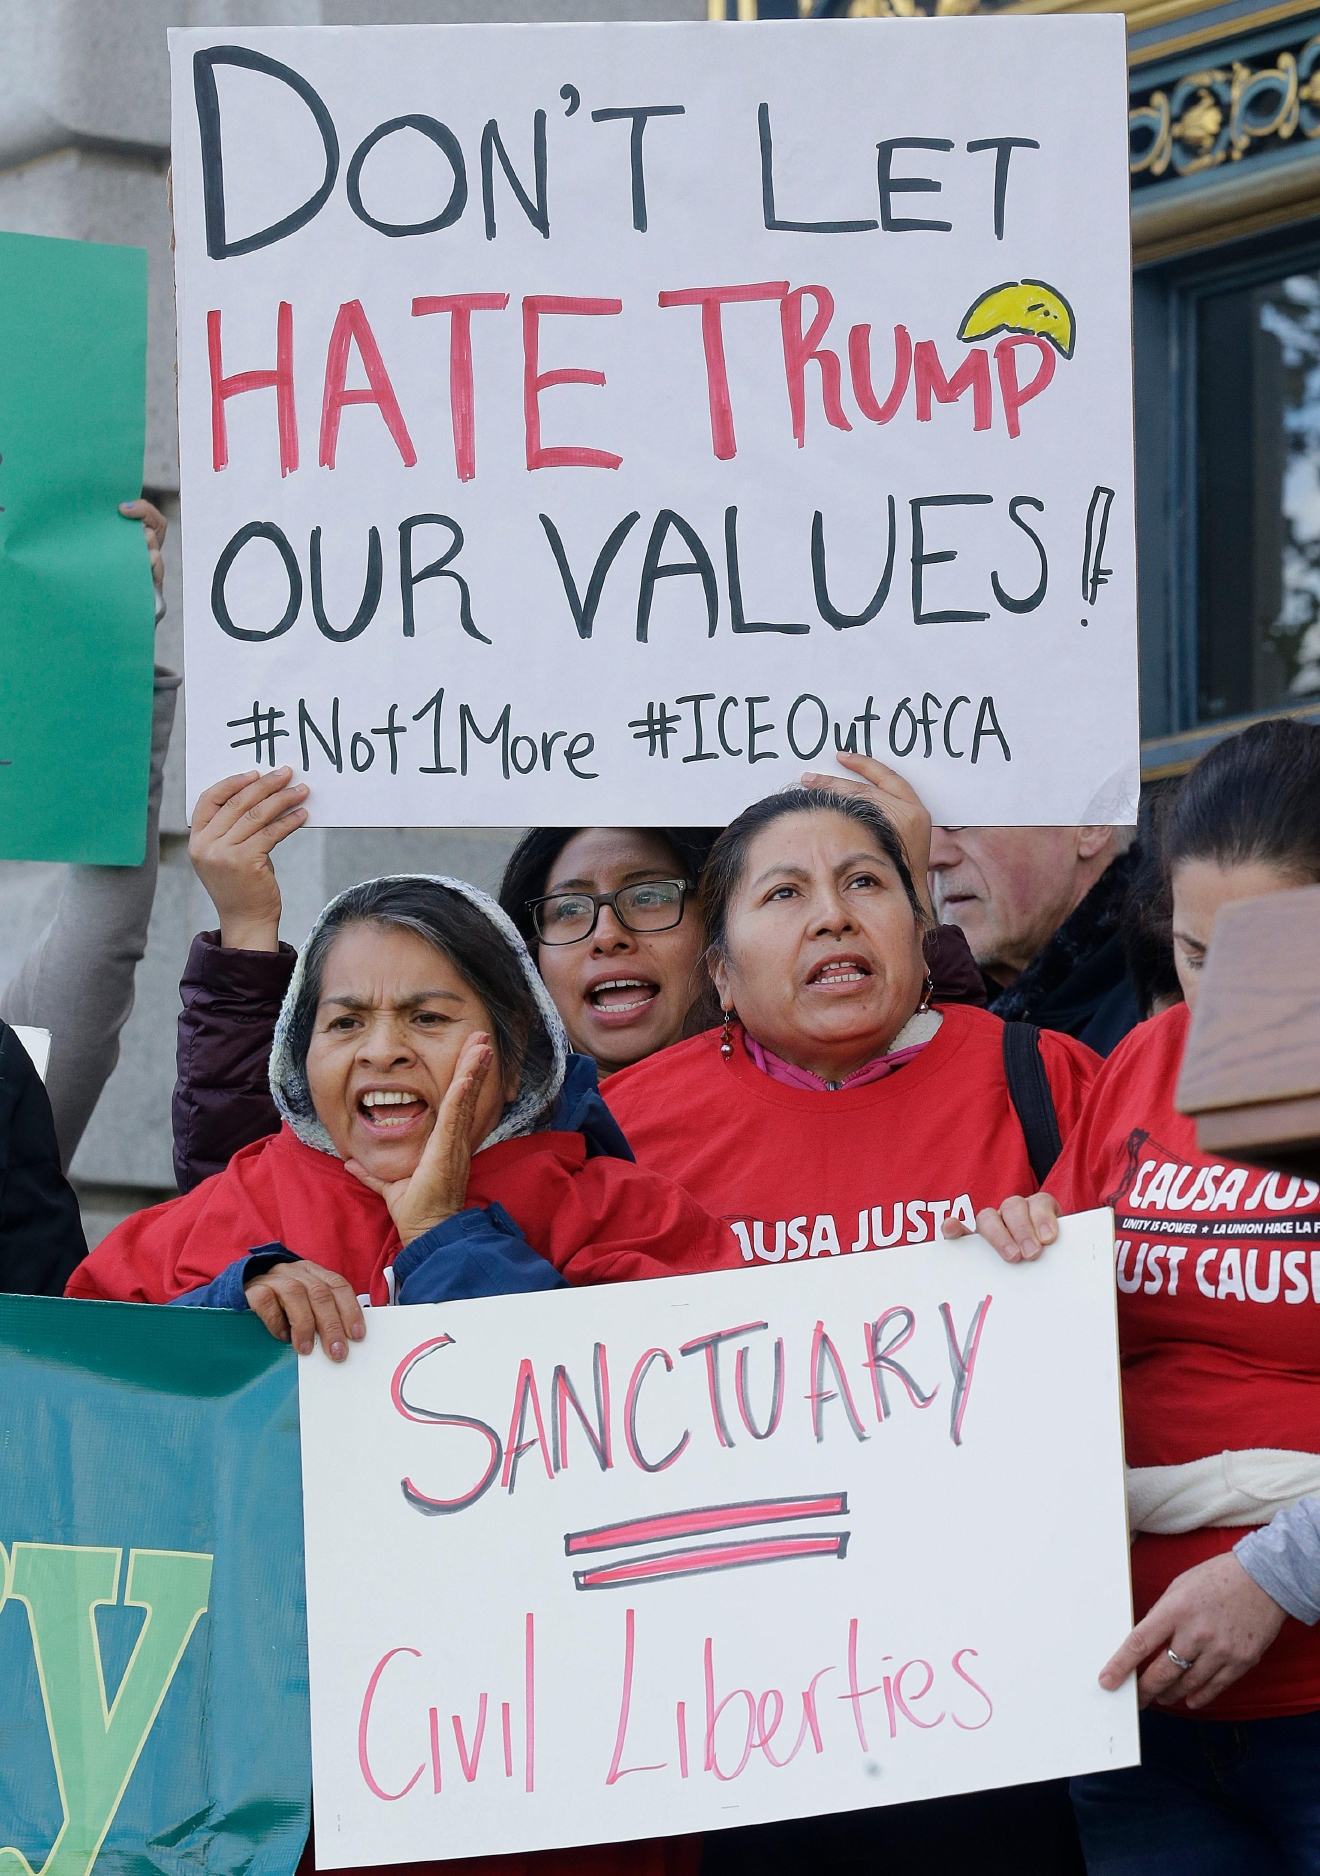 "Protesters hold signs as they yell at a rally outside of City Hall in San Francisco, Wednesday, Jan. 25, 2017. President Donald Trump moved aggressively to tighten the nation's immigration controls Wednesday, signing executive actions to jumpstart construction of his promised U.S.-Mexico border wall and cut federal grants for immigrant-protecting ""sanctuary cities."" (AP Photo/Jeff Chiu)"